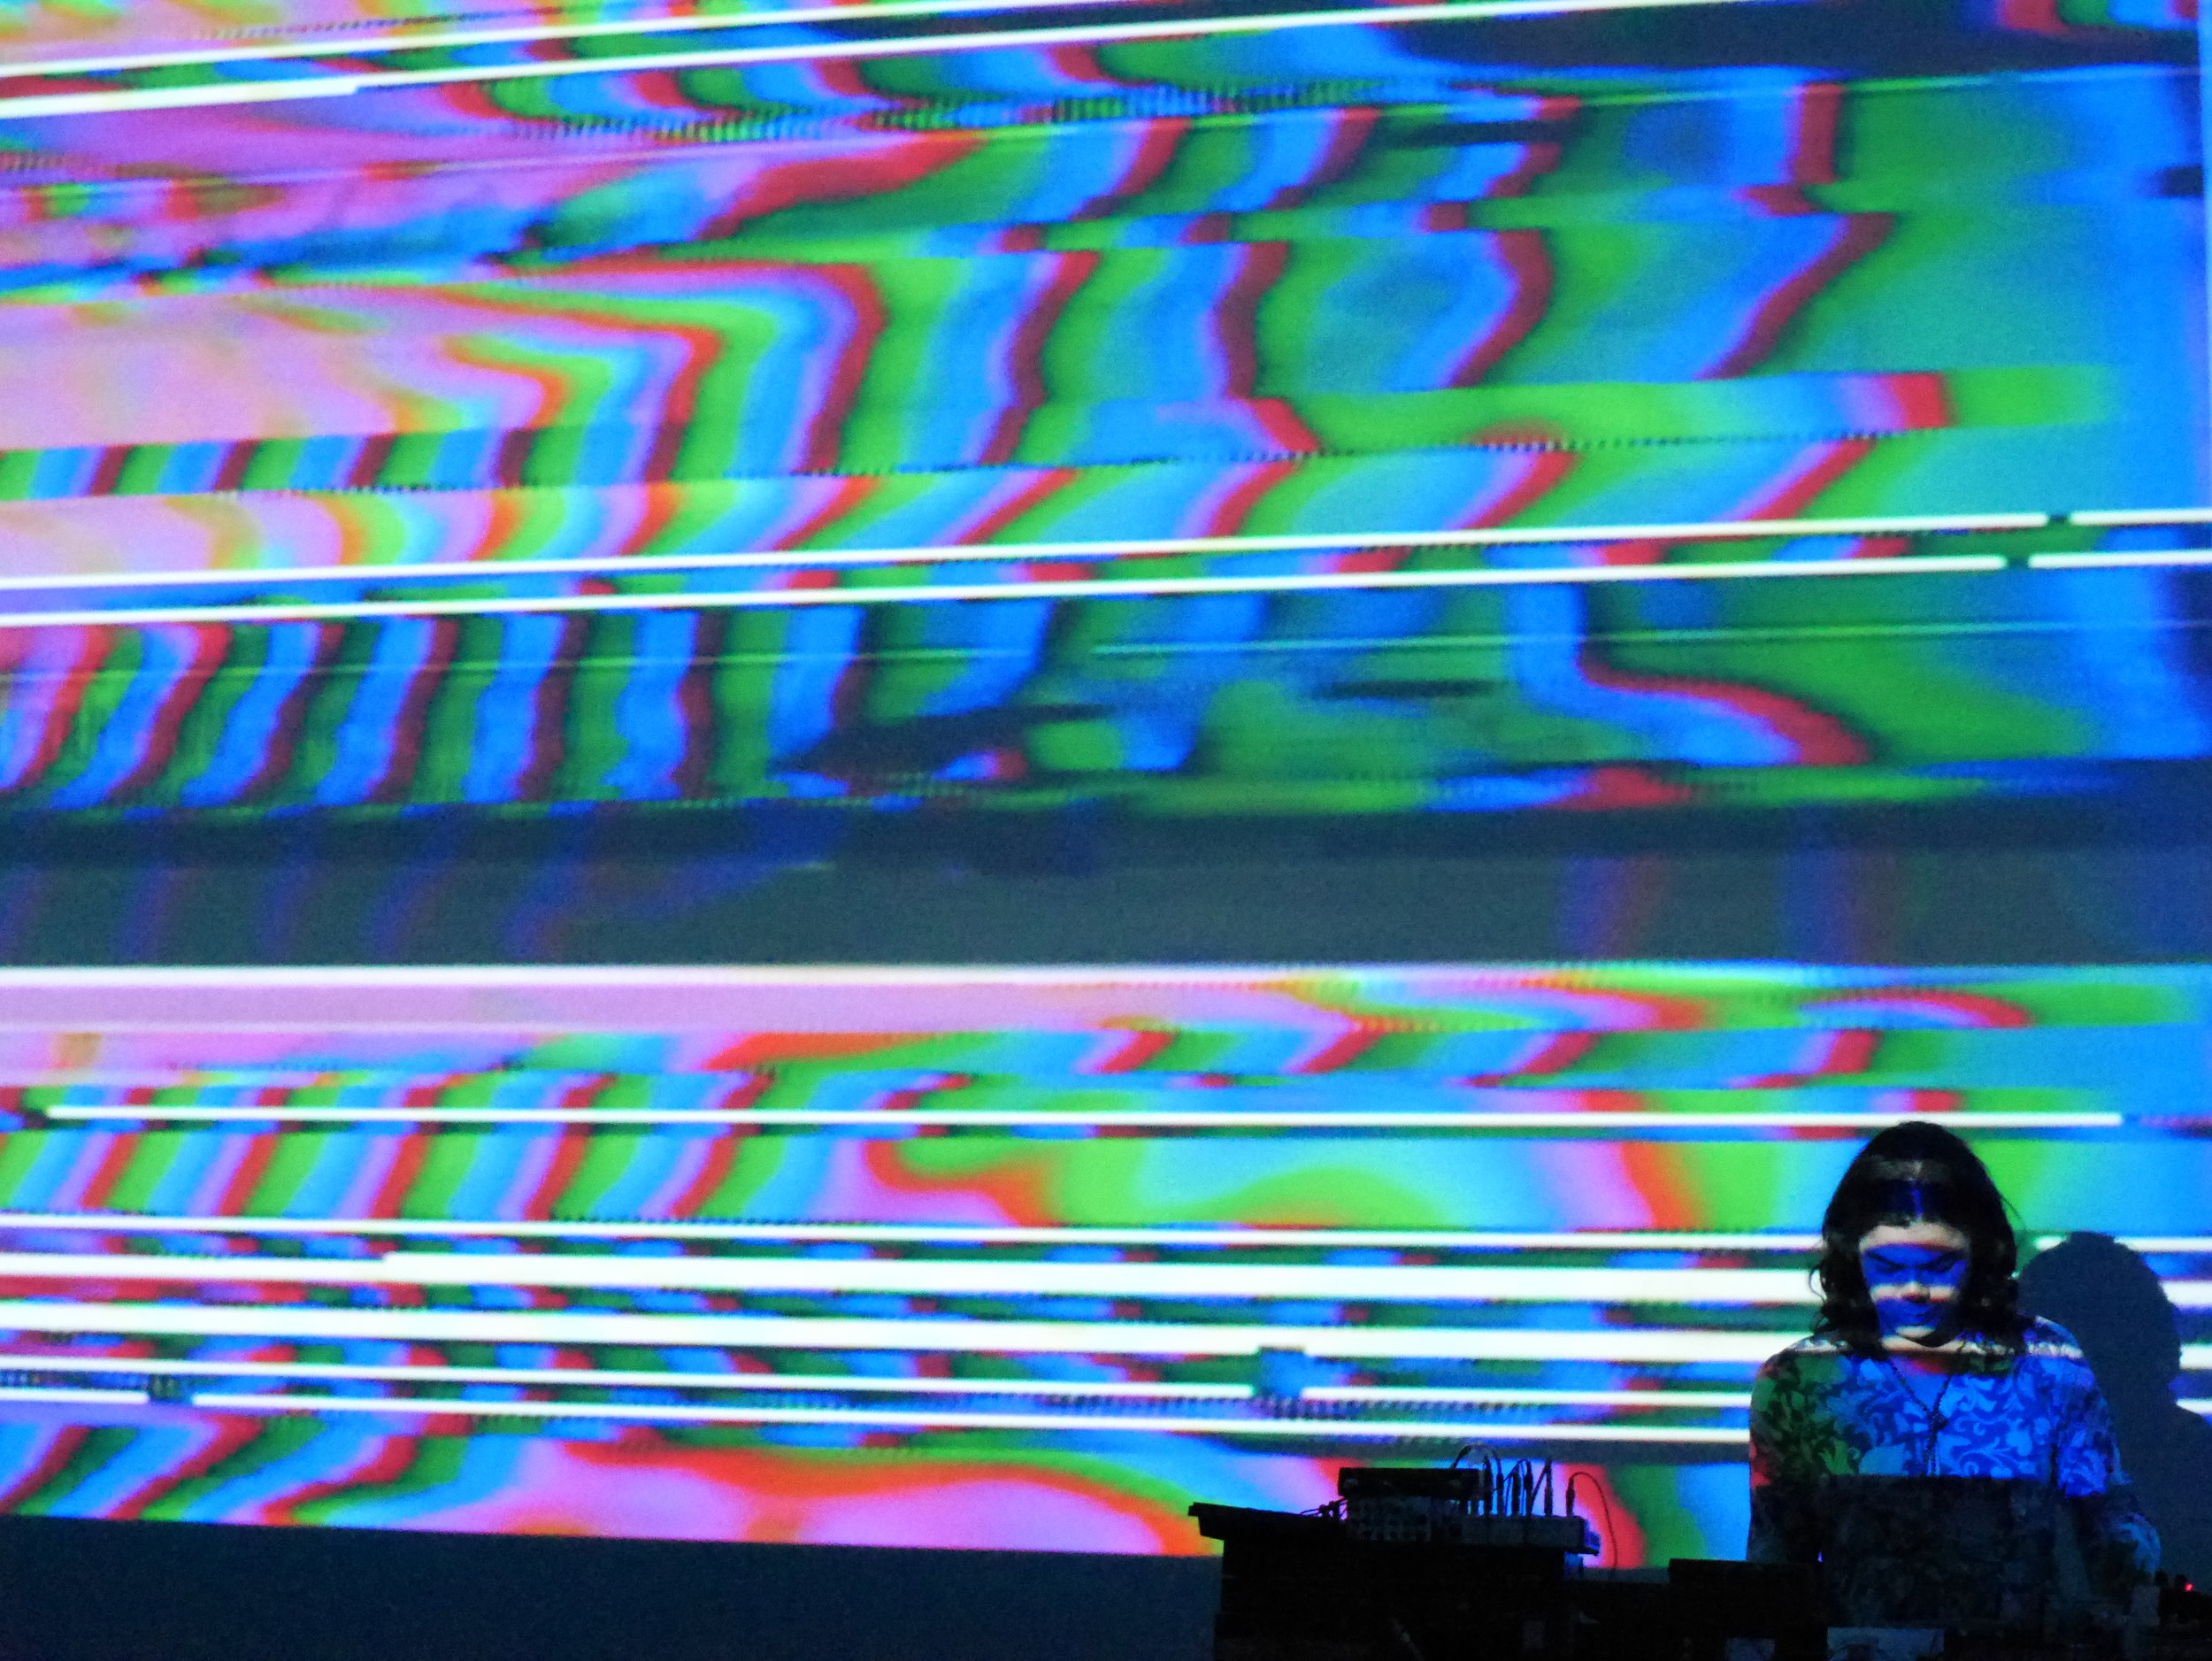 Video Feedback Live Performance - by Masayuki KawaiTuesday 16 October at 7 pm (by invitation only)